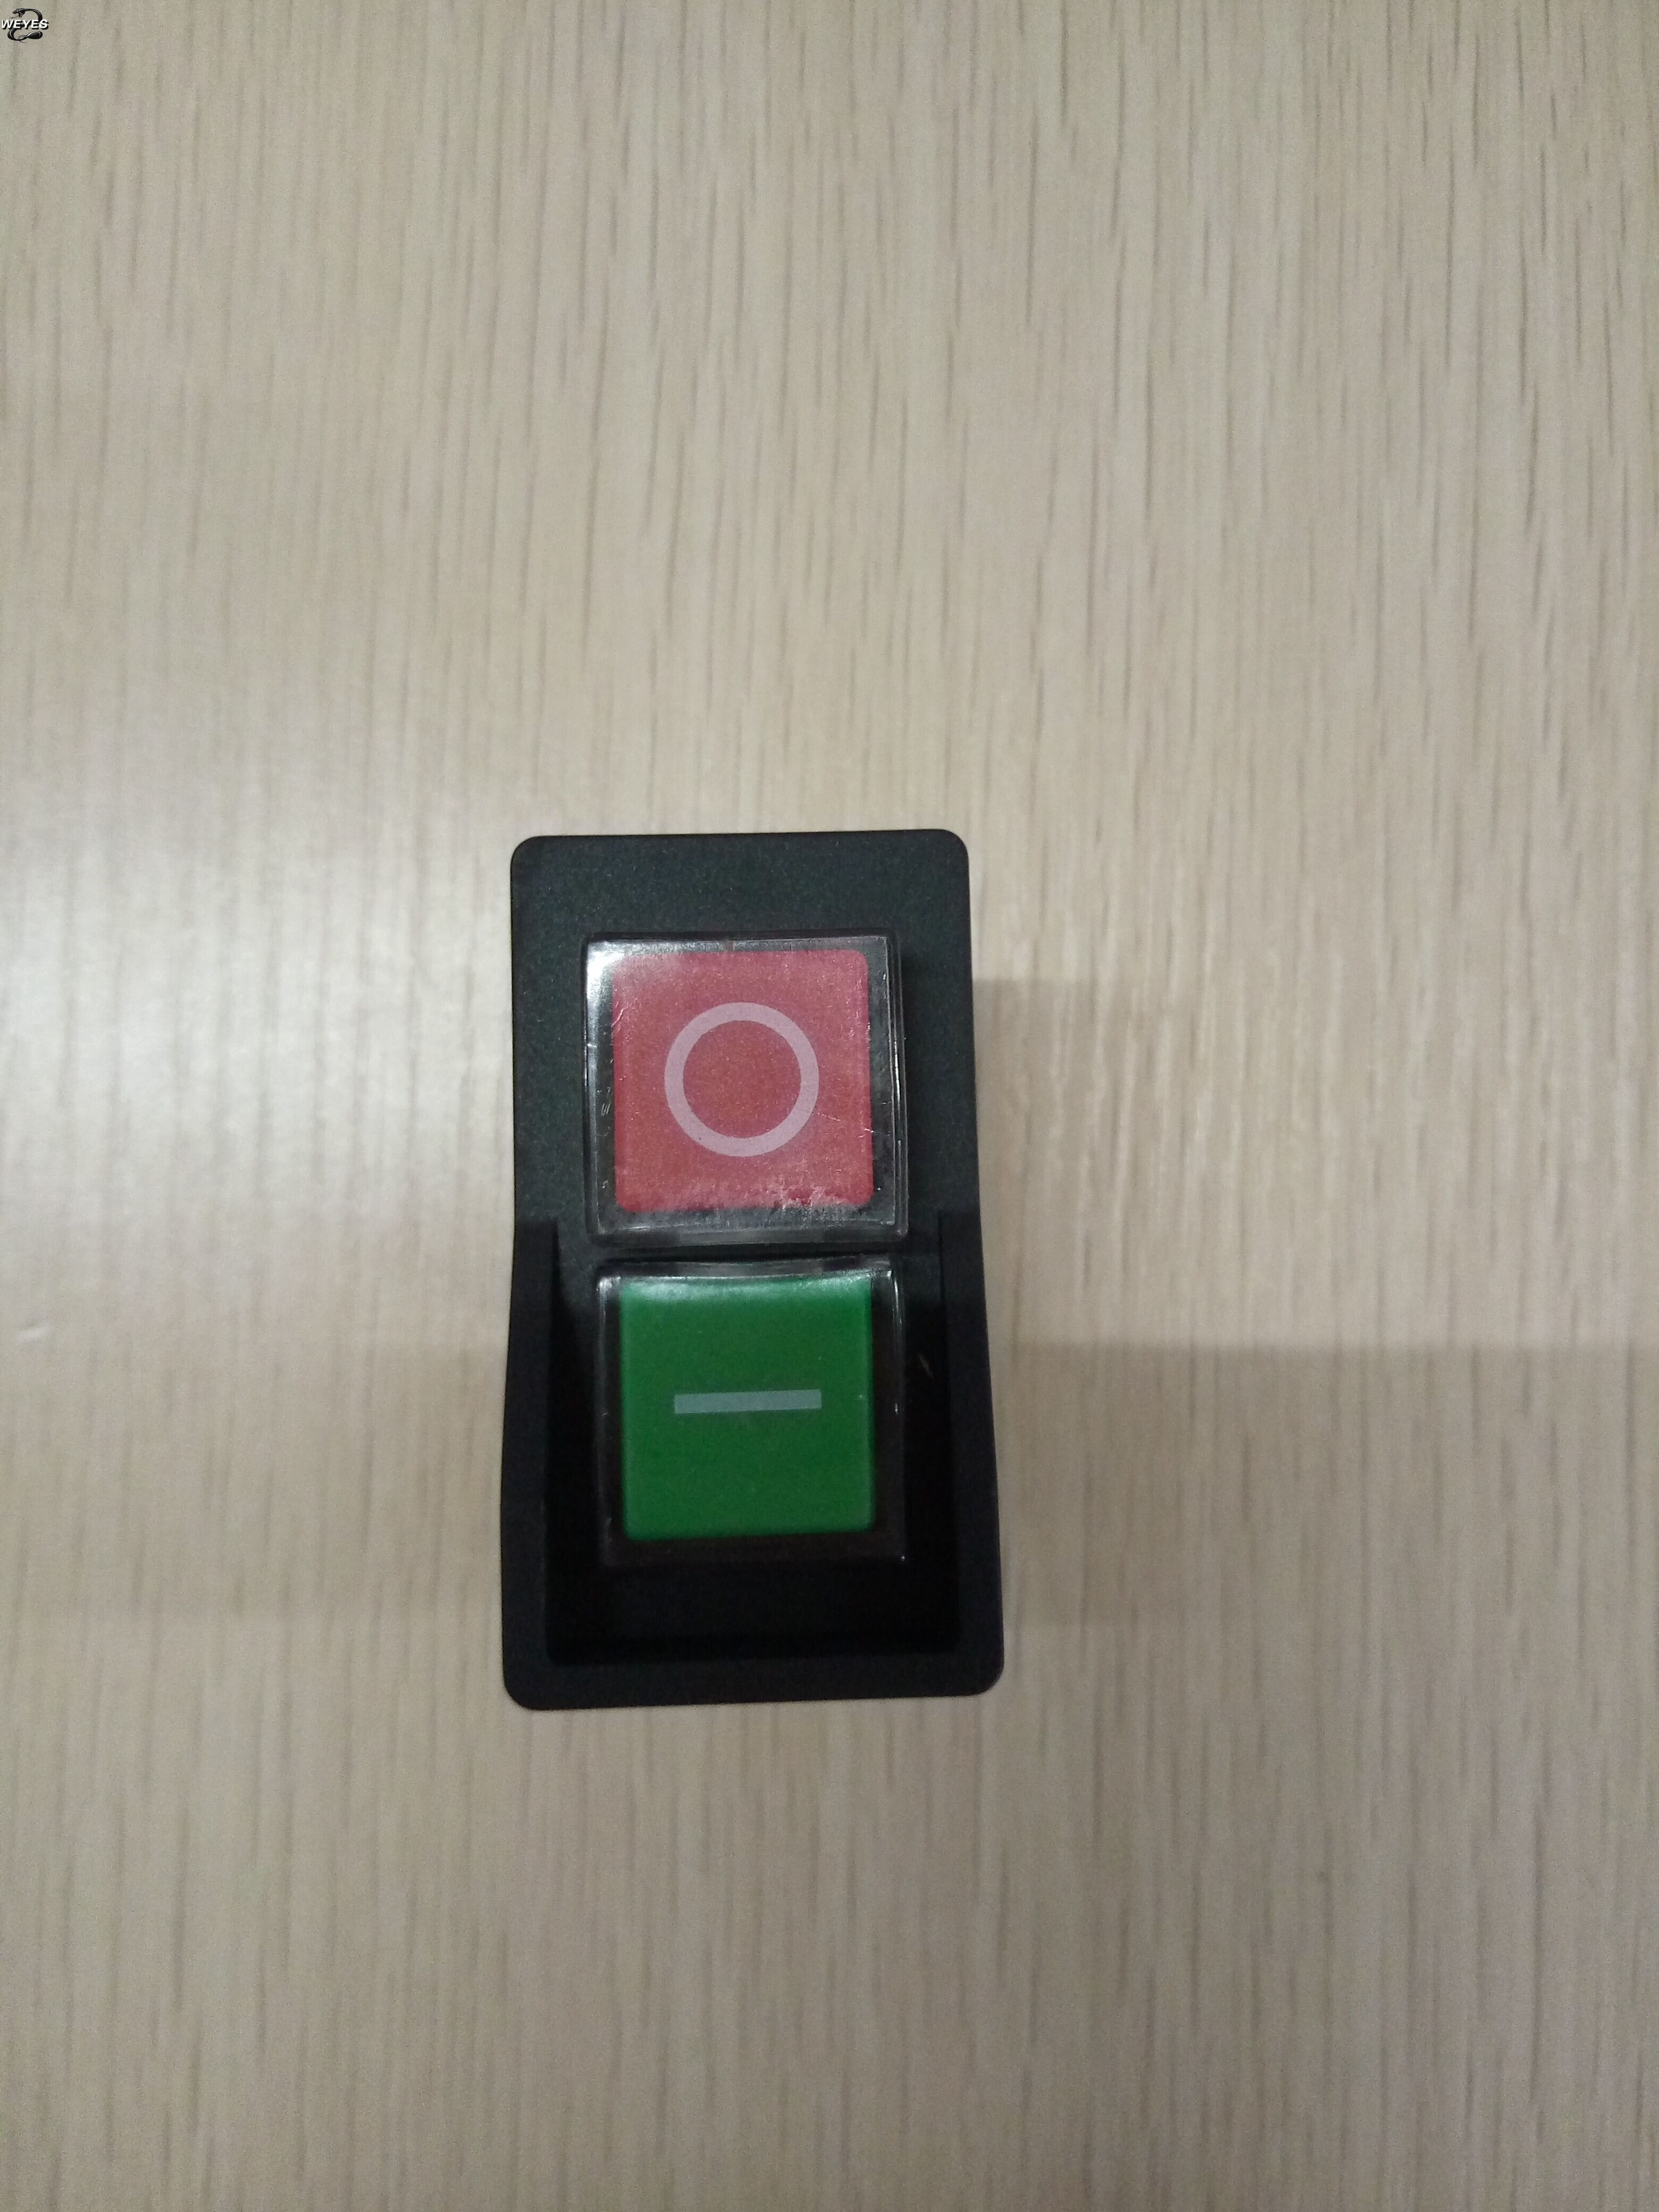 KLD-28A 5E4 IP65 220v Magnetic Explosion-proof Pushbutton Switch Magnetic Starter Electromagnetic Switches